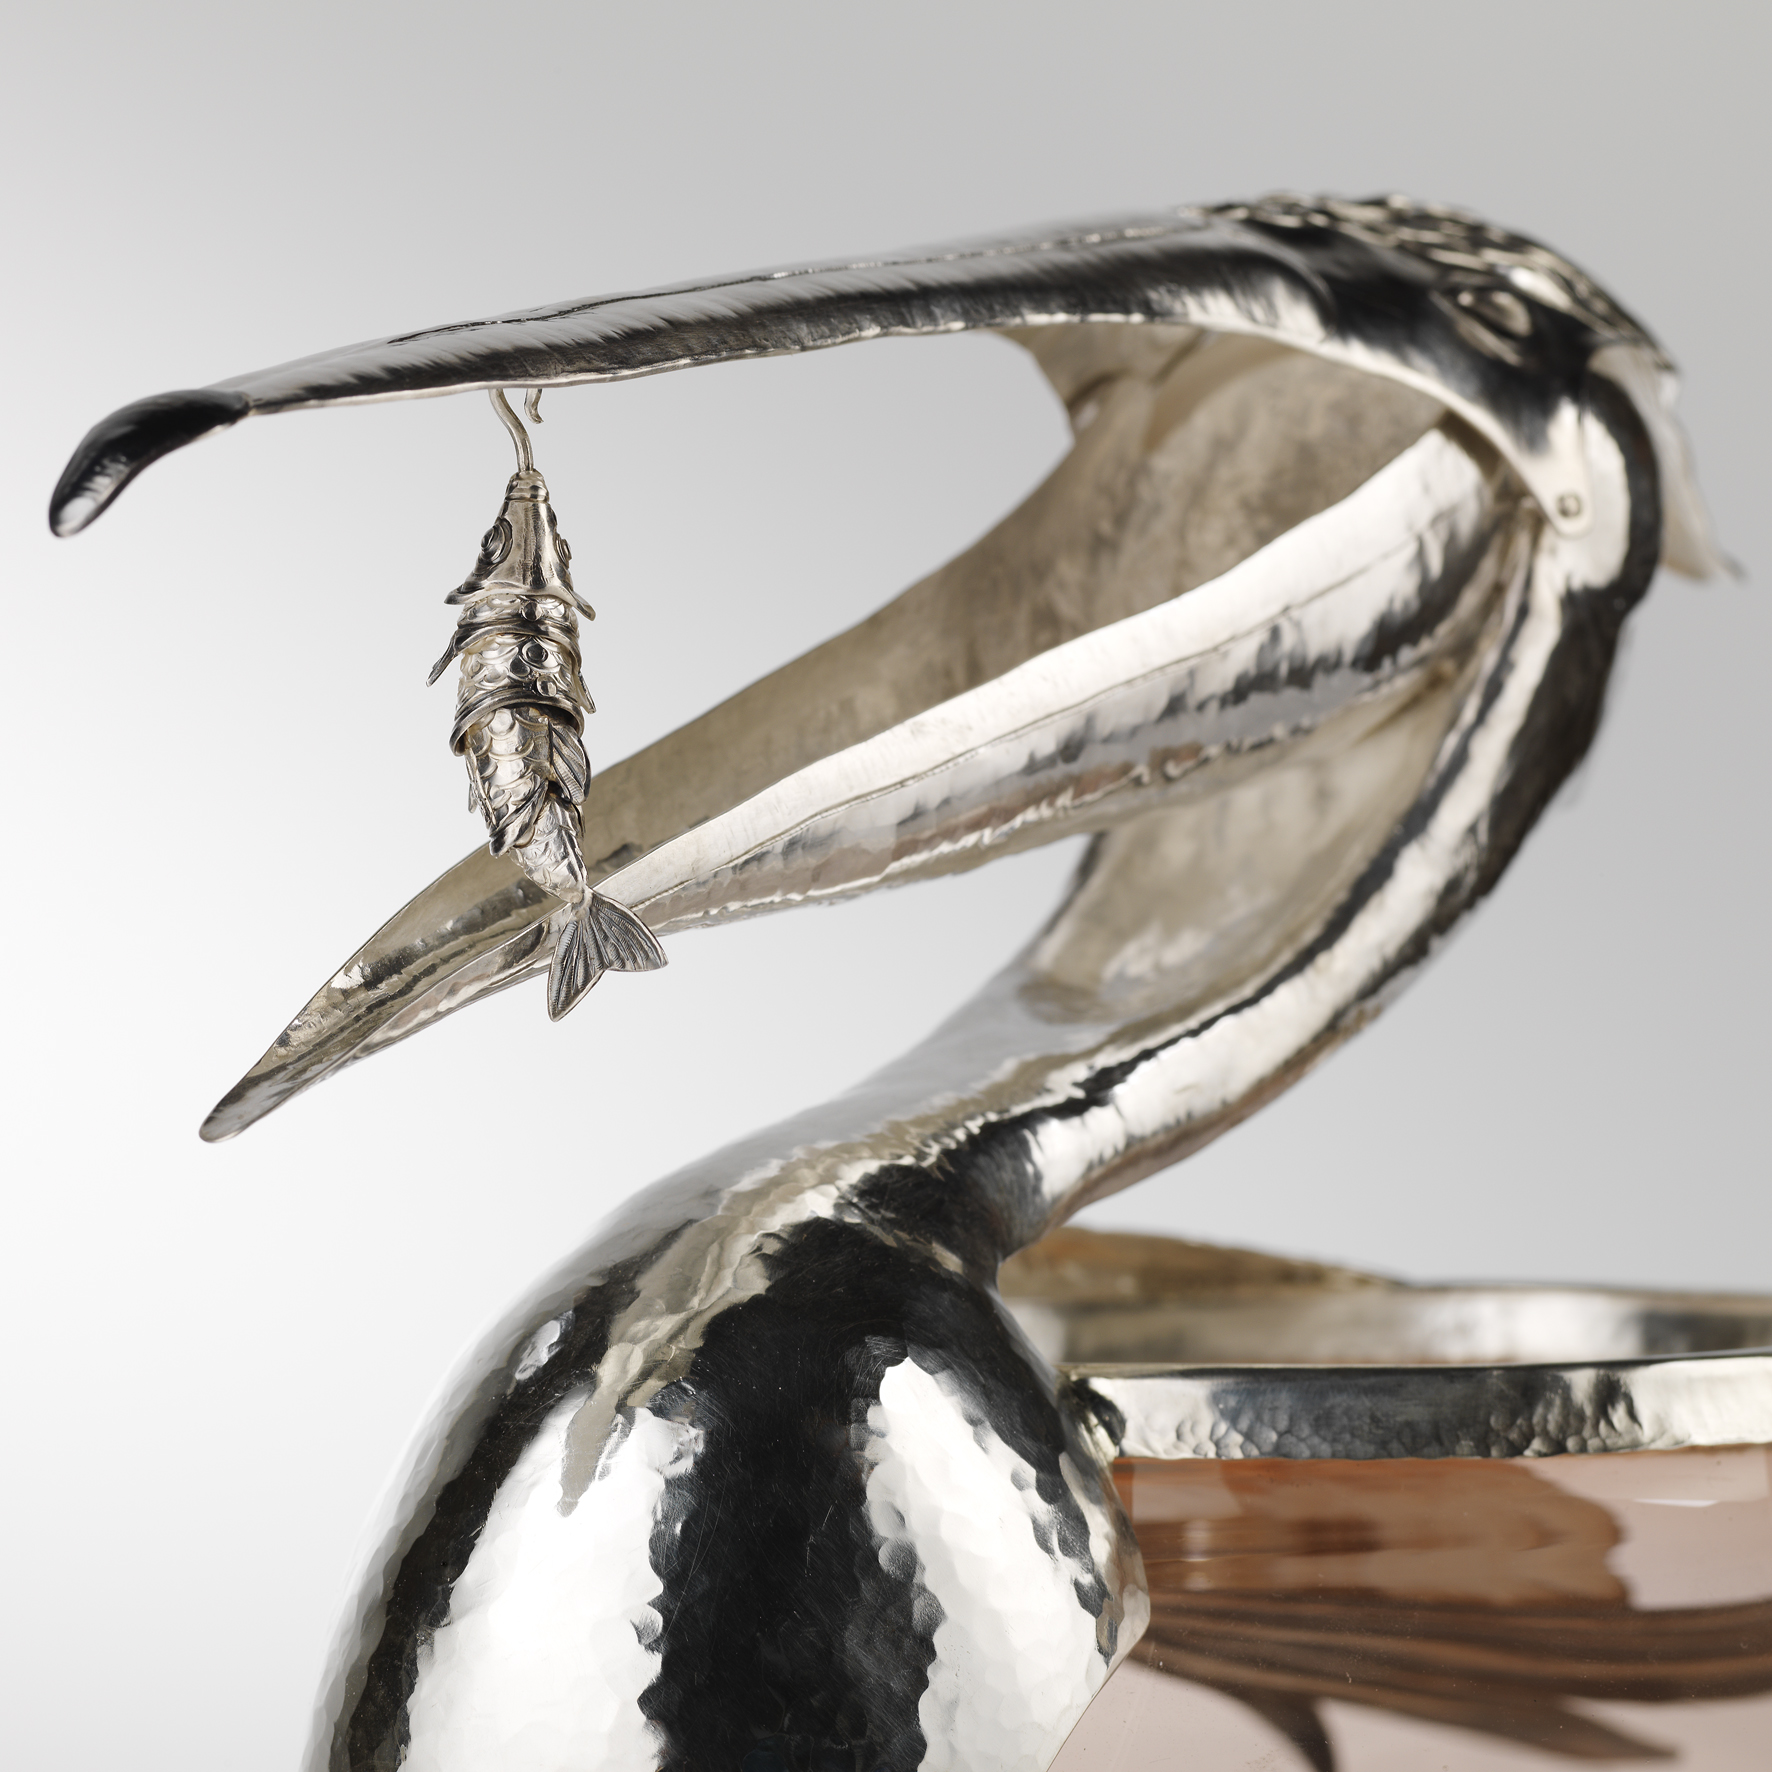 Pelican Bowl: Open beak with Articulated Fish Pendant